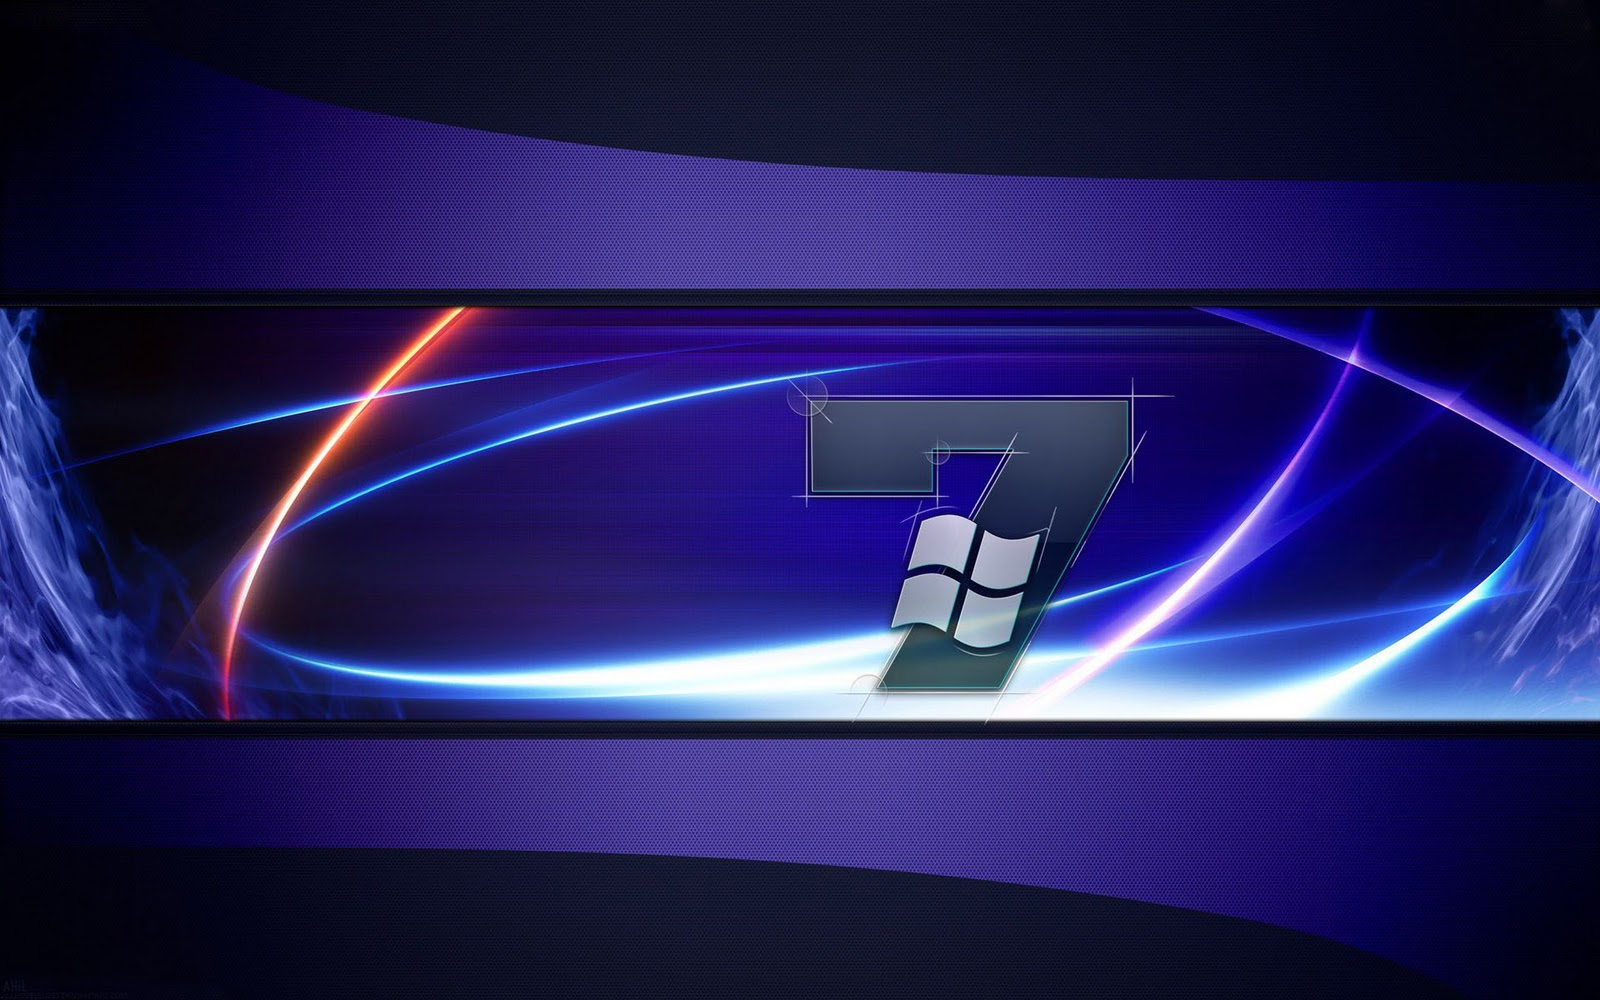 Windows 7 Wallpapers | Walls Hub